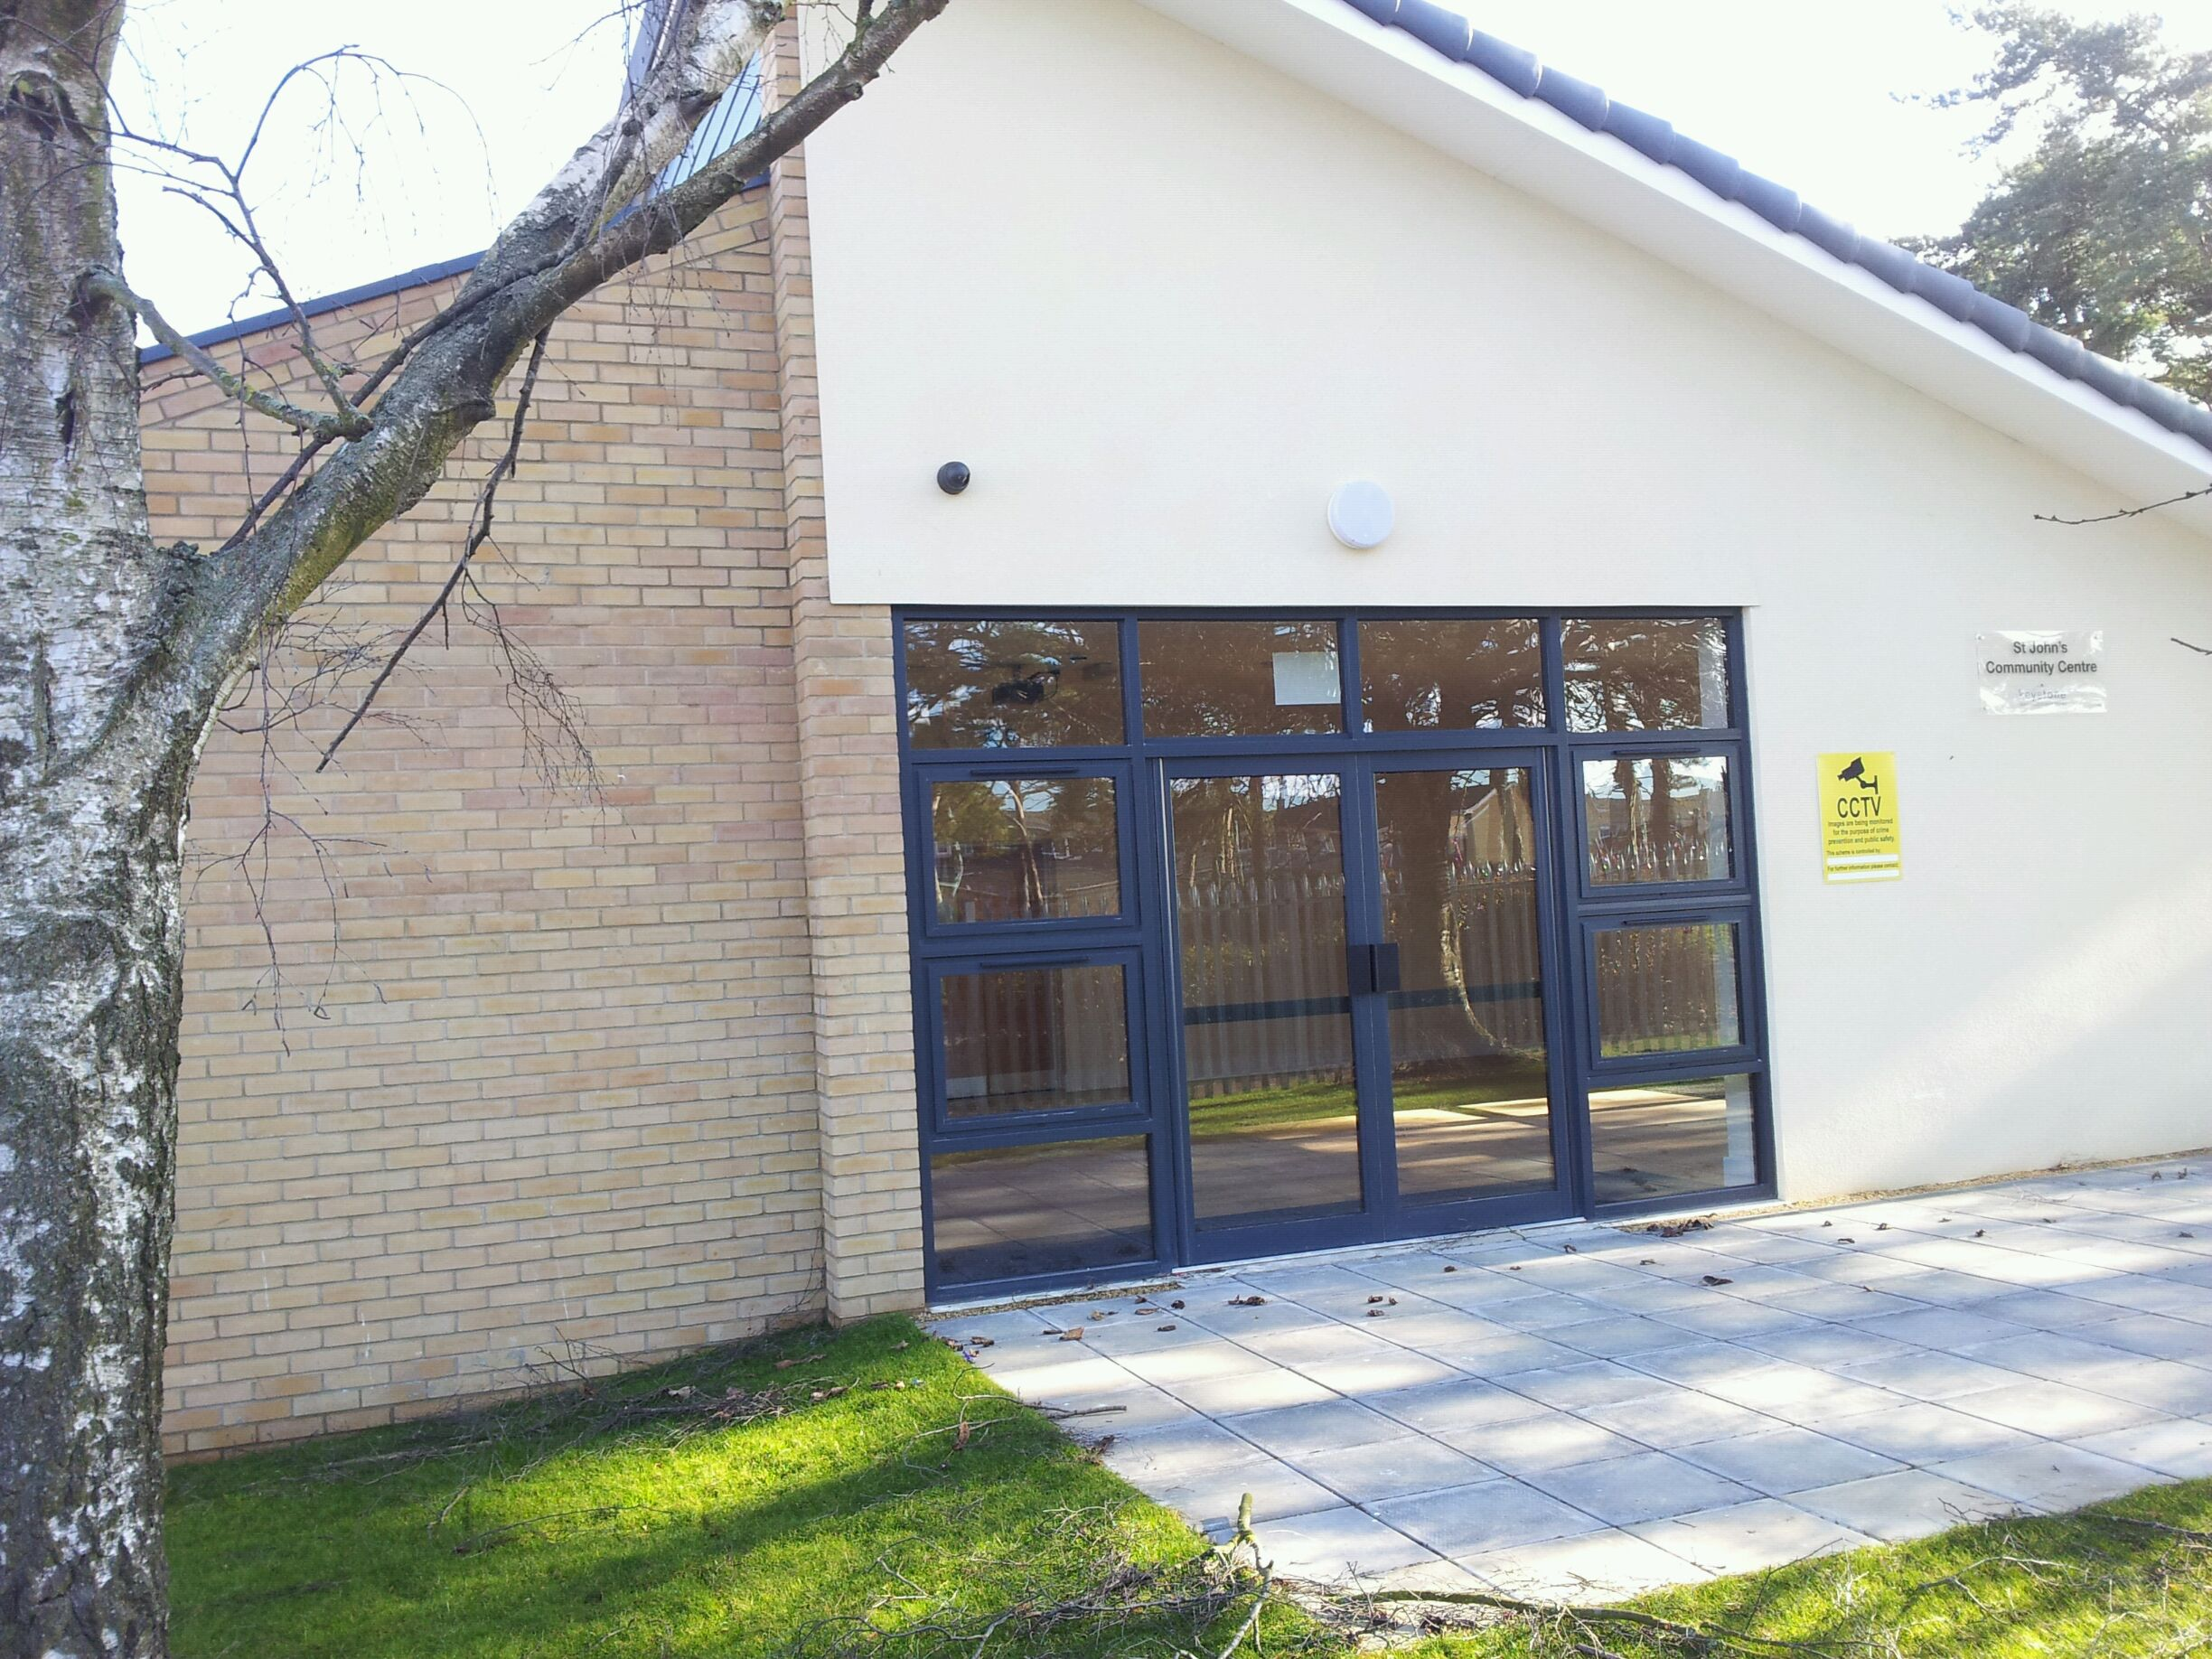 St Johns Community Centre